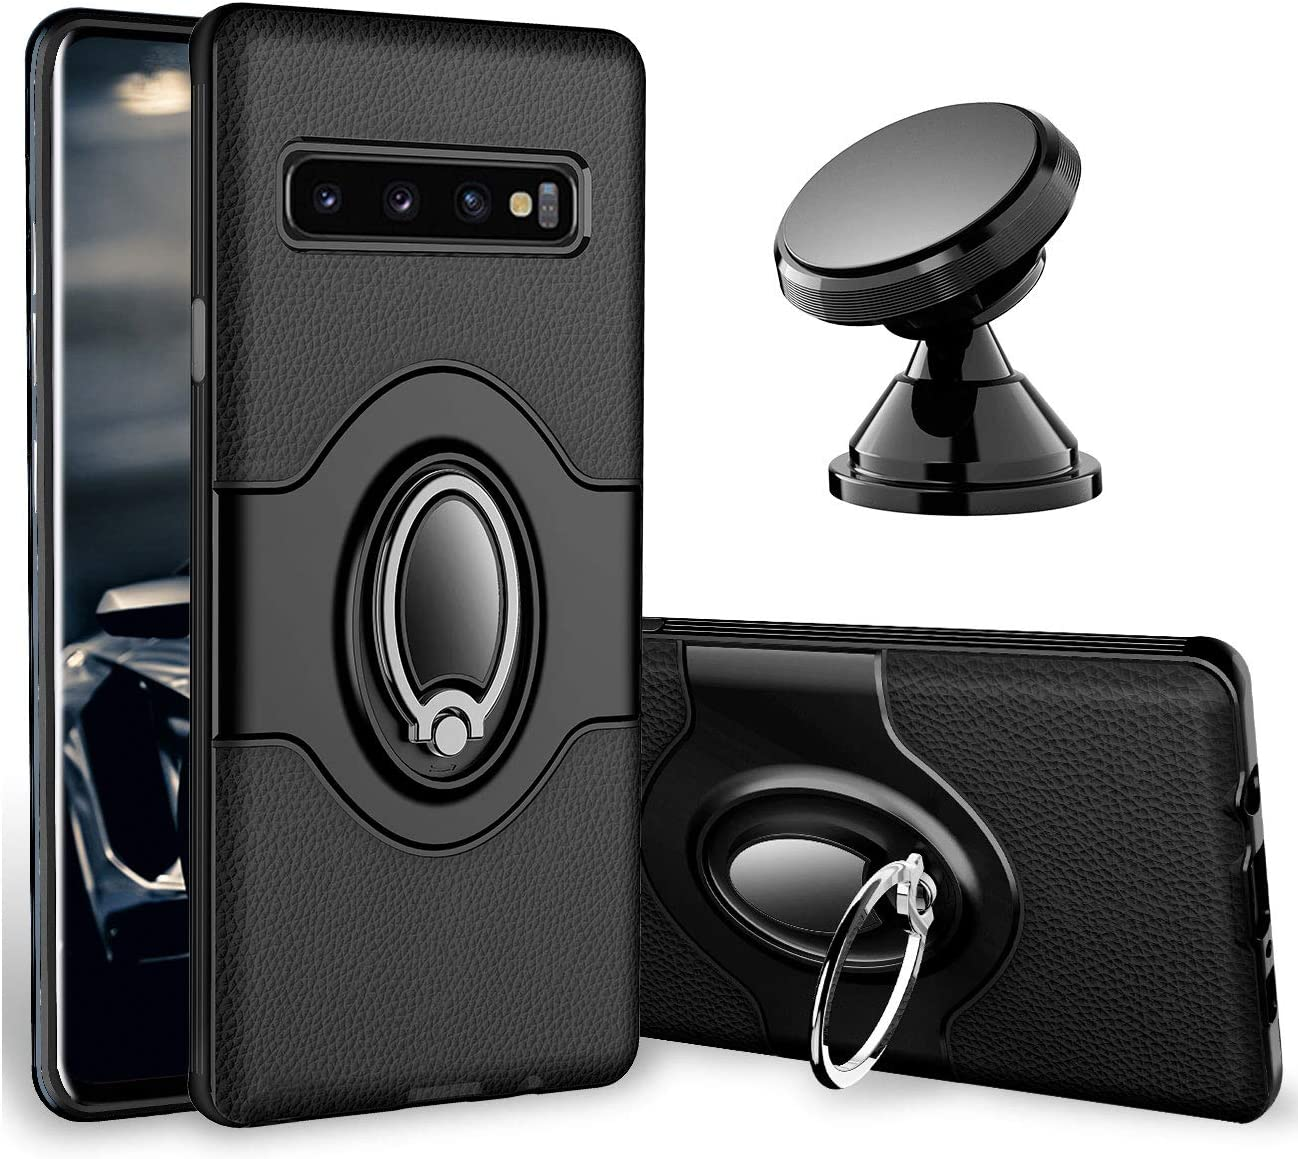 eSamcore Samsung Galaxy S10 Plus Case Ring Holder Kickstand Cases Dashboard Magnetic Phone Car Mount Navy Blue